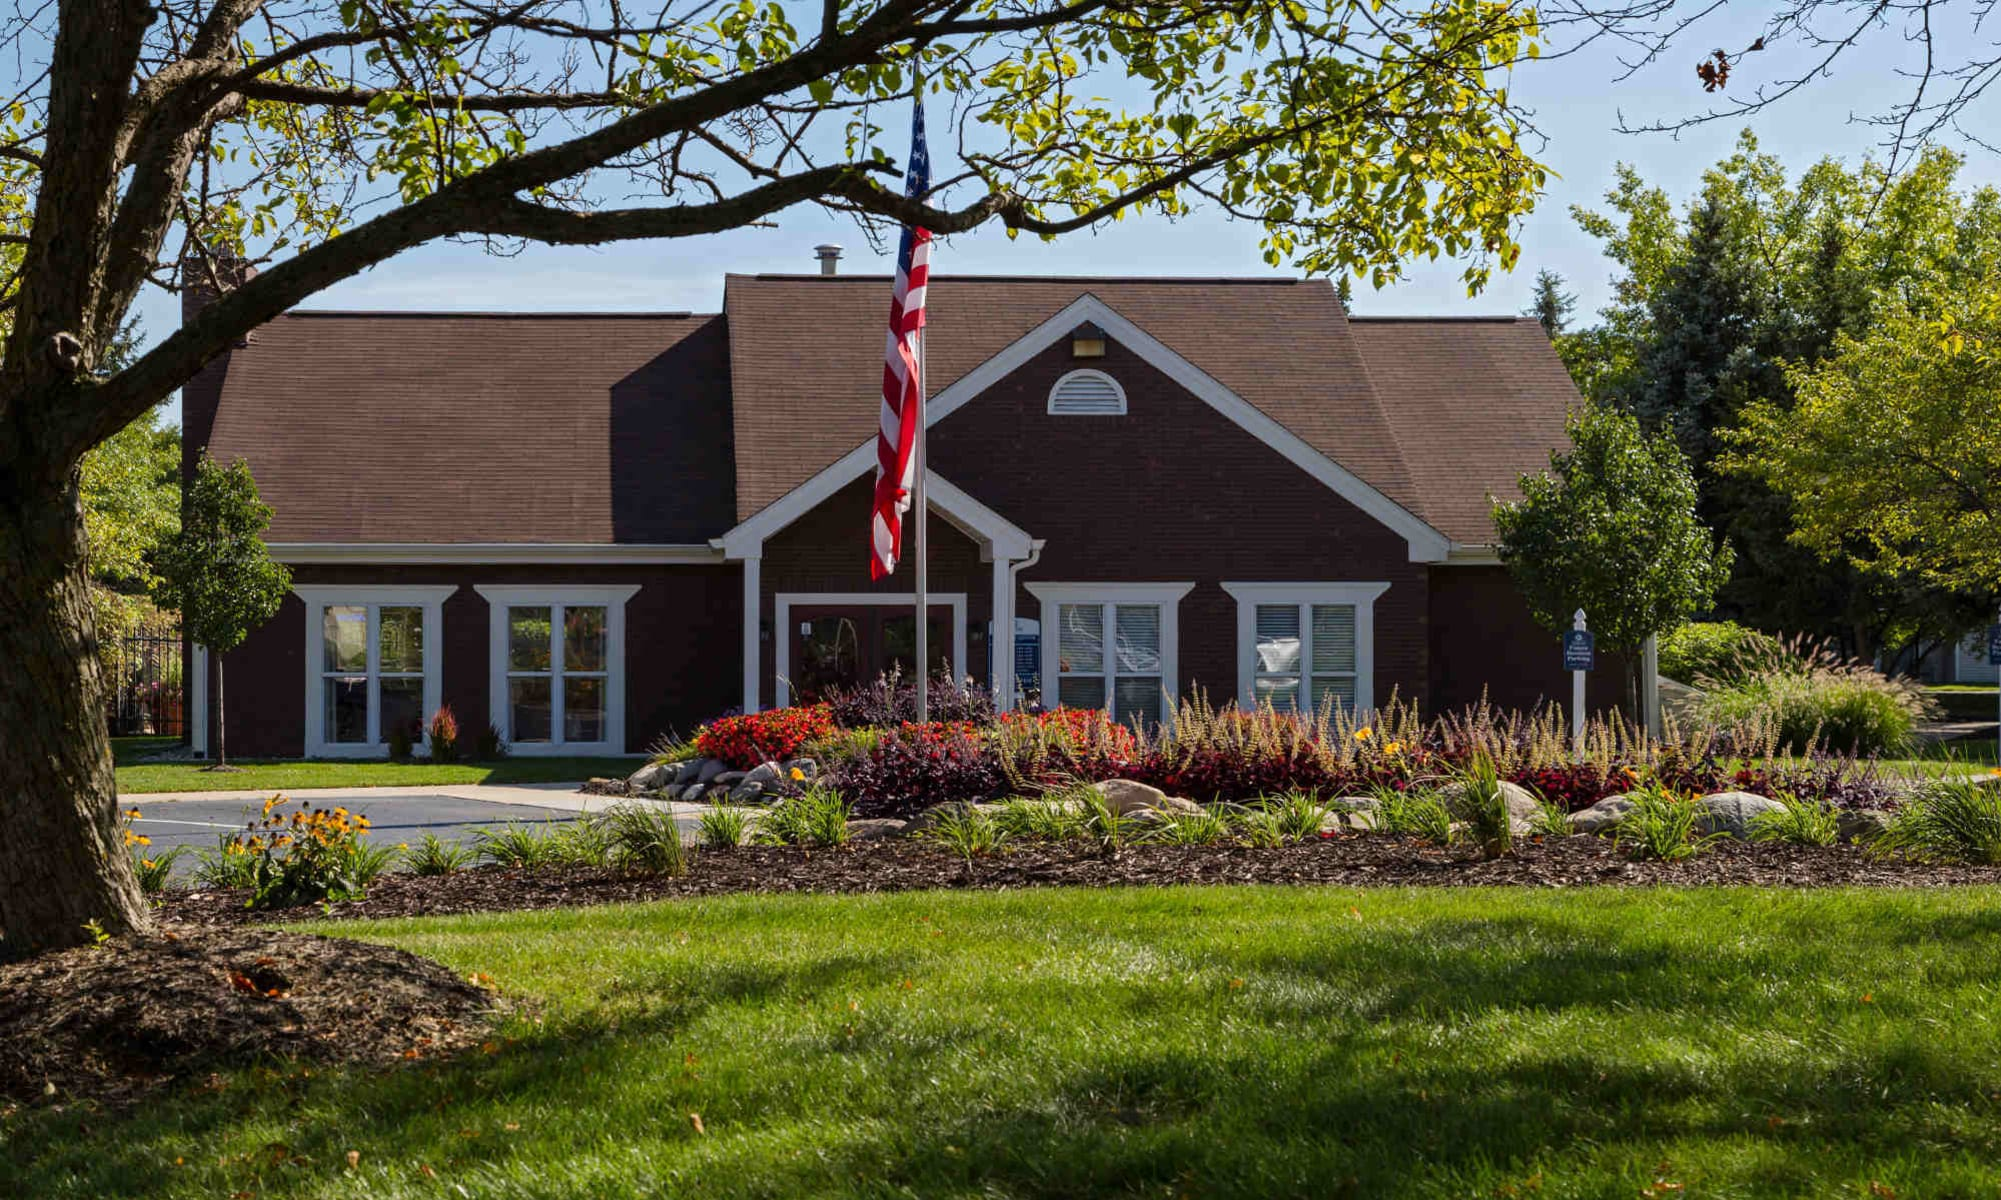 Apartments in Clinton Township, MI